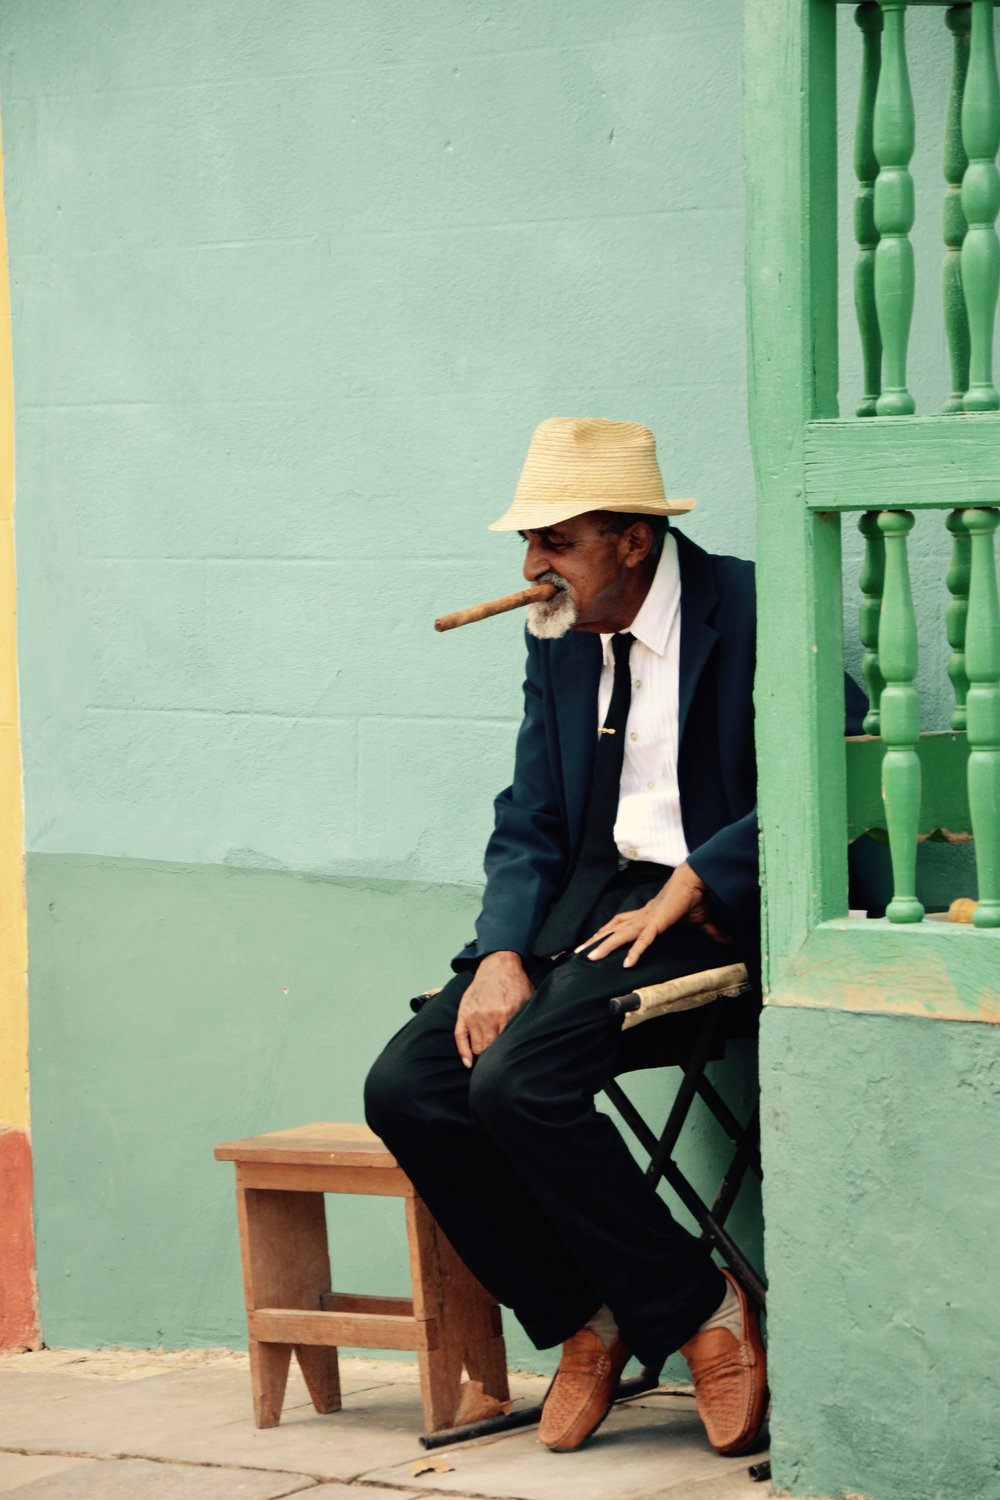 trinidad, cuba. cigars date back to 10th century south america.